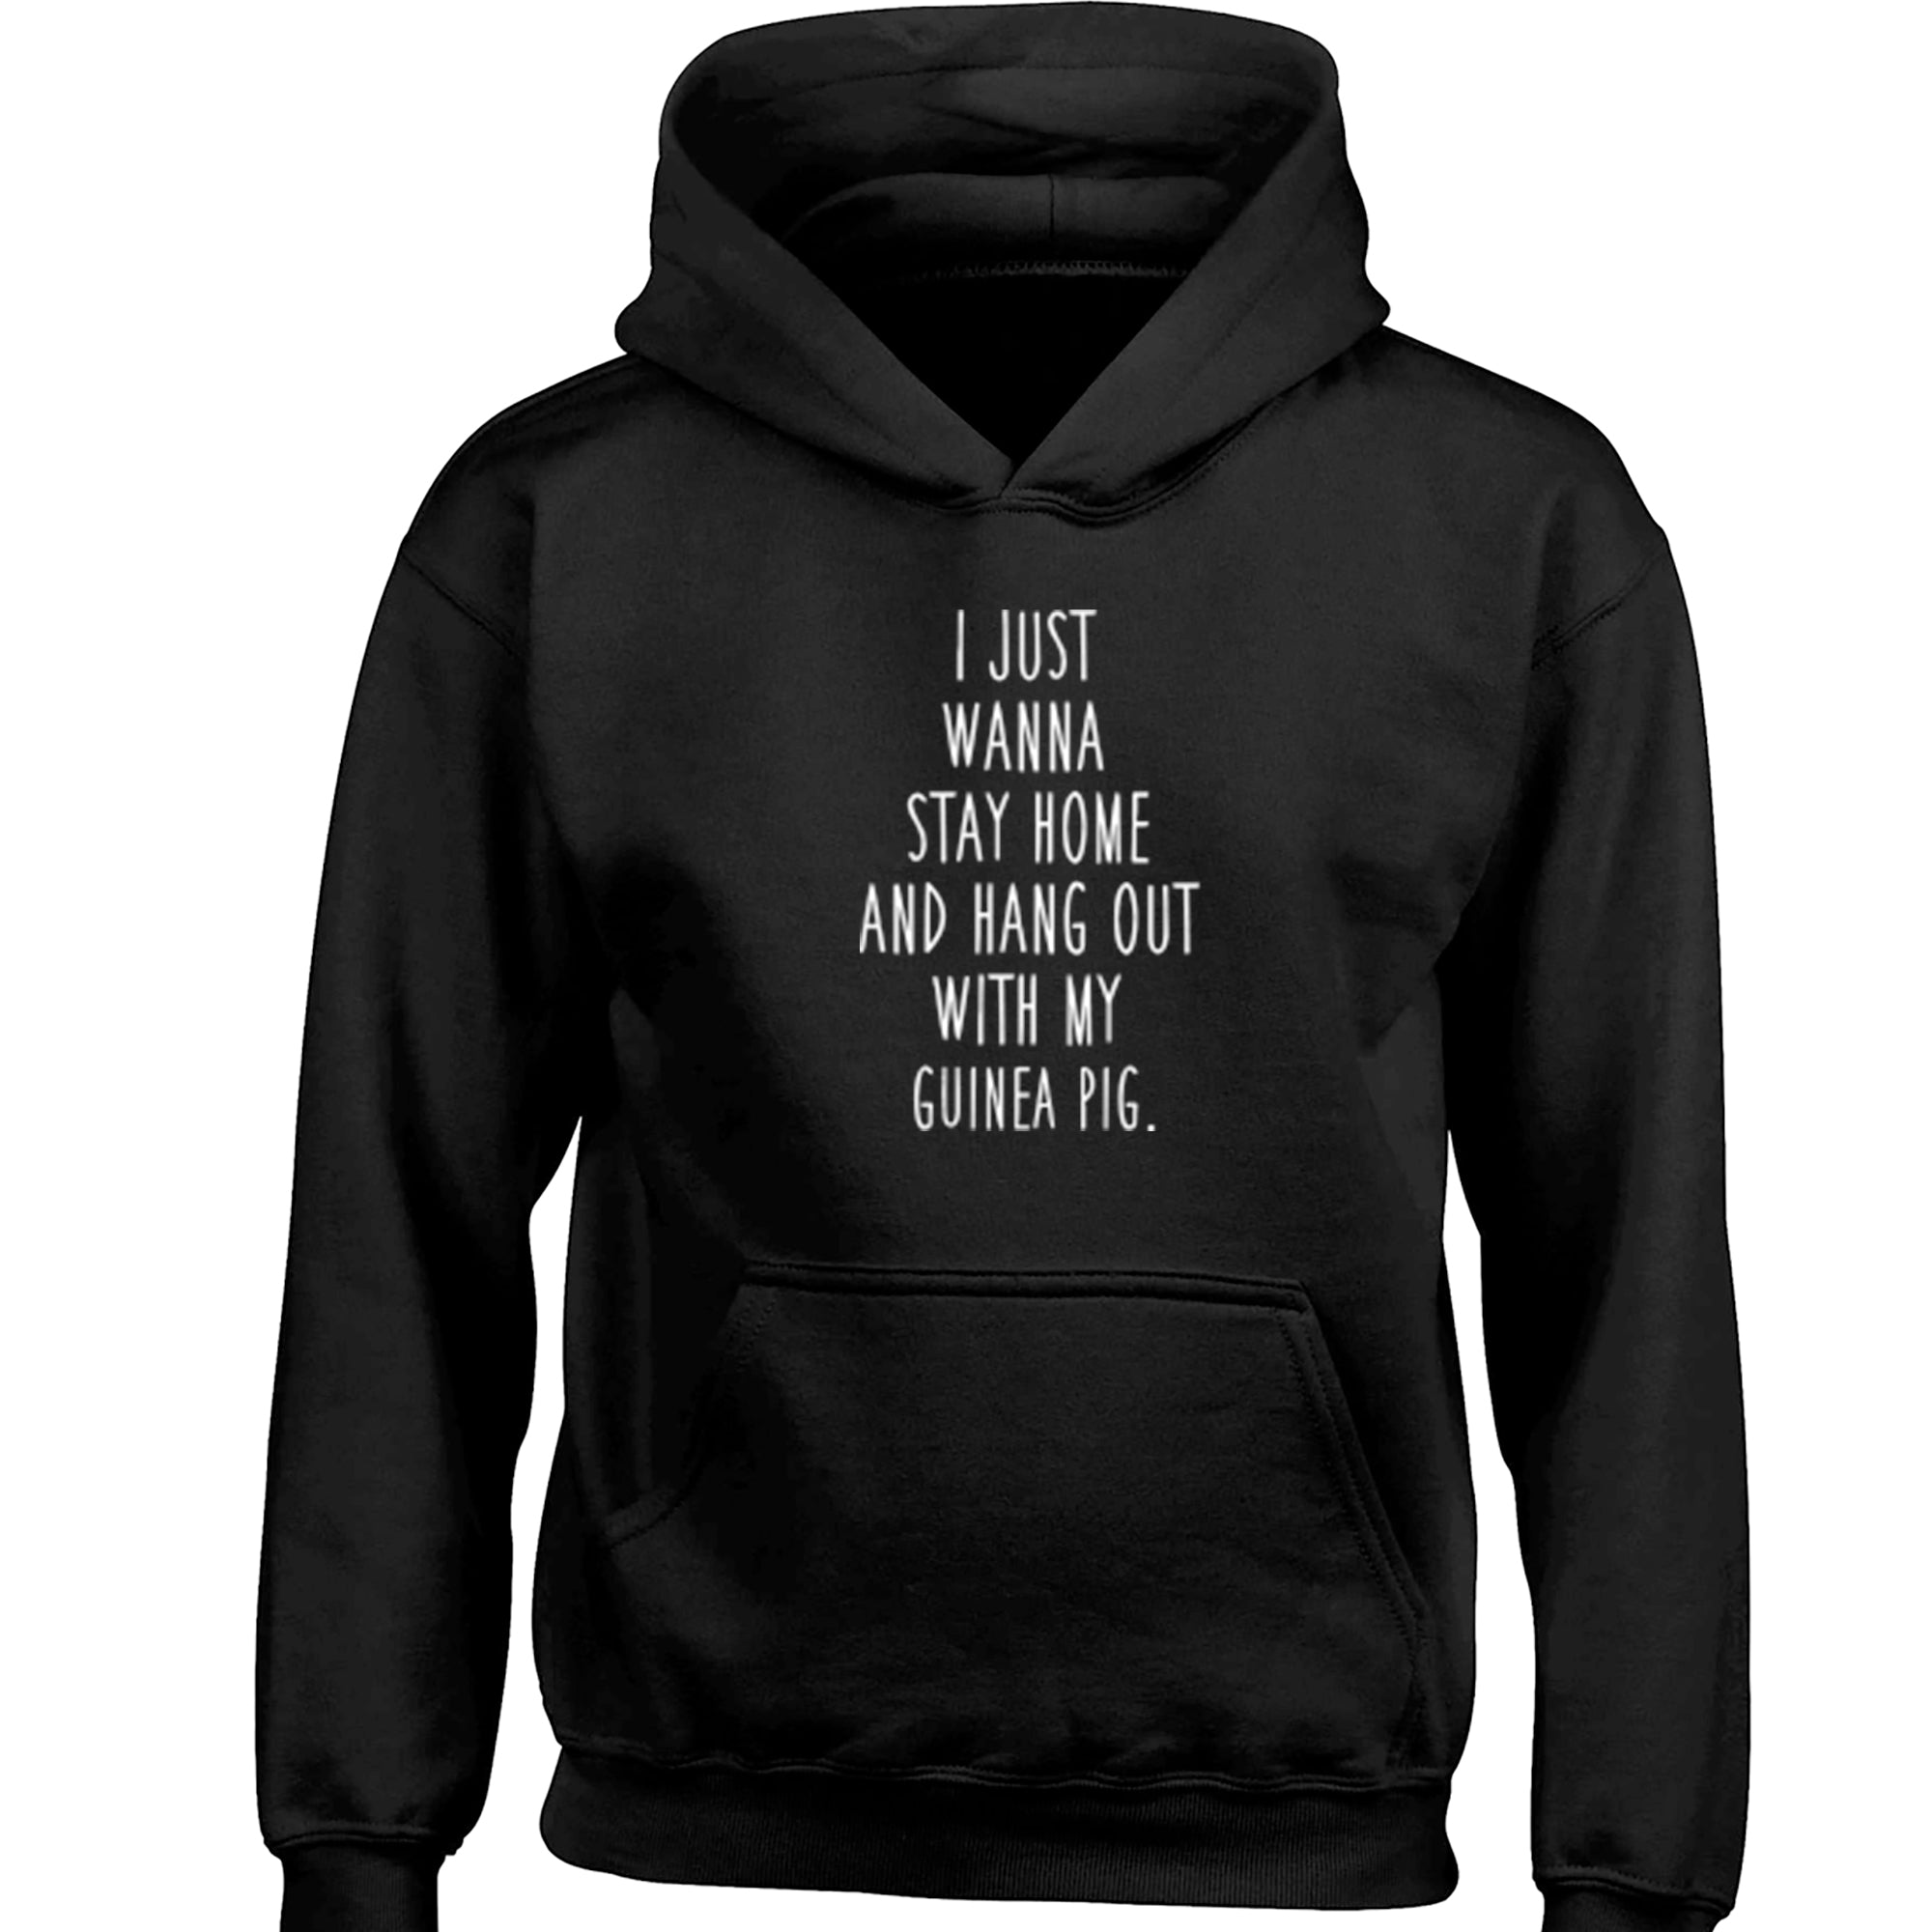 I Just Wanna Stay Home And Hang Out With My Guinea Pig Childrens Ages 3/4-12/14 Printed Hoodie S0834 - Illustrated Identity Ltd.